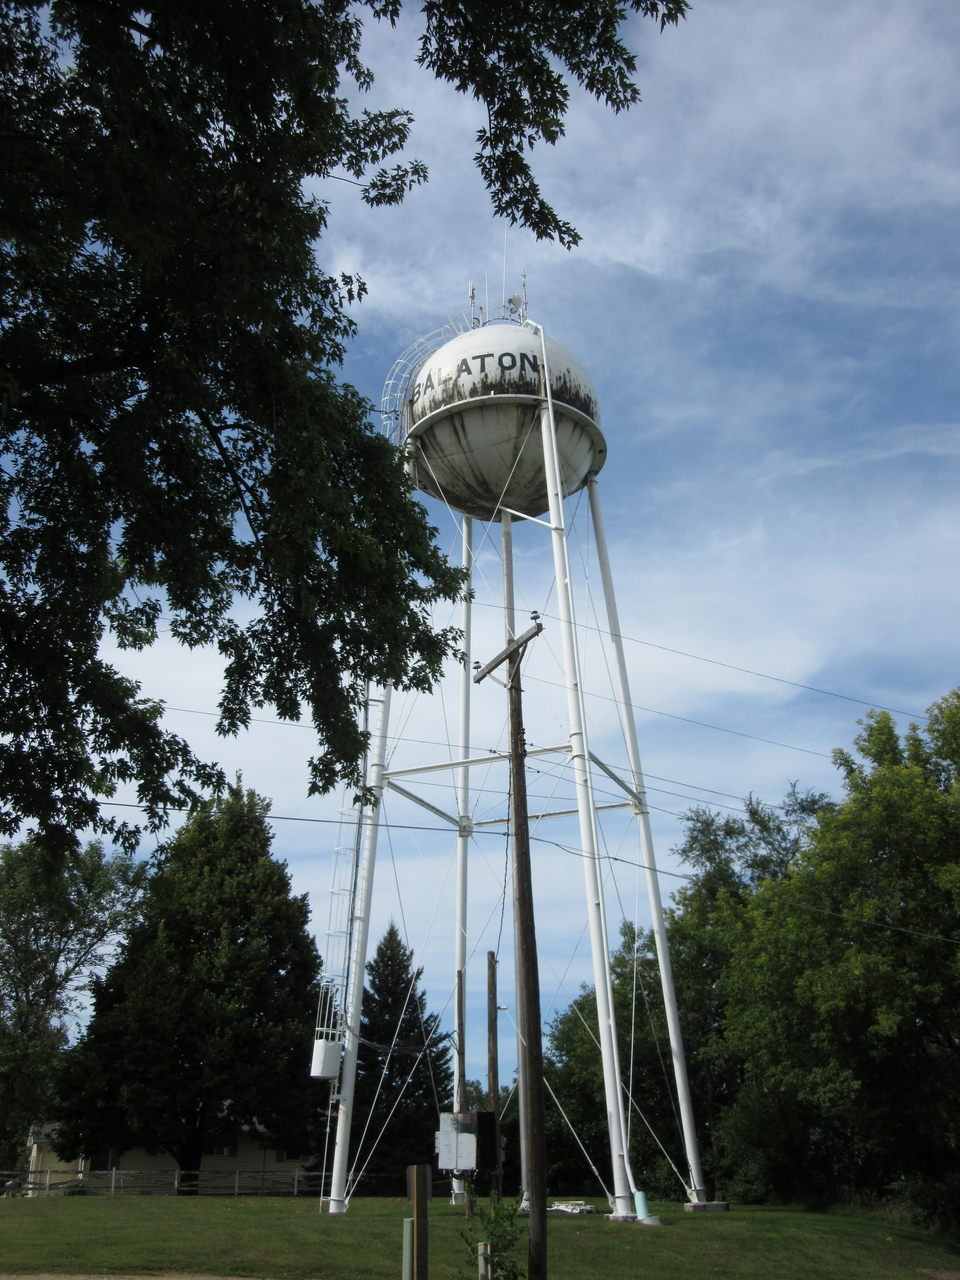 Water tower in Balaton Minnesota